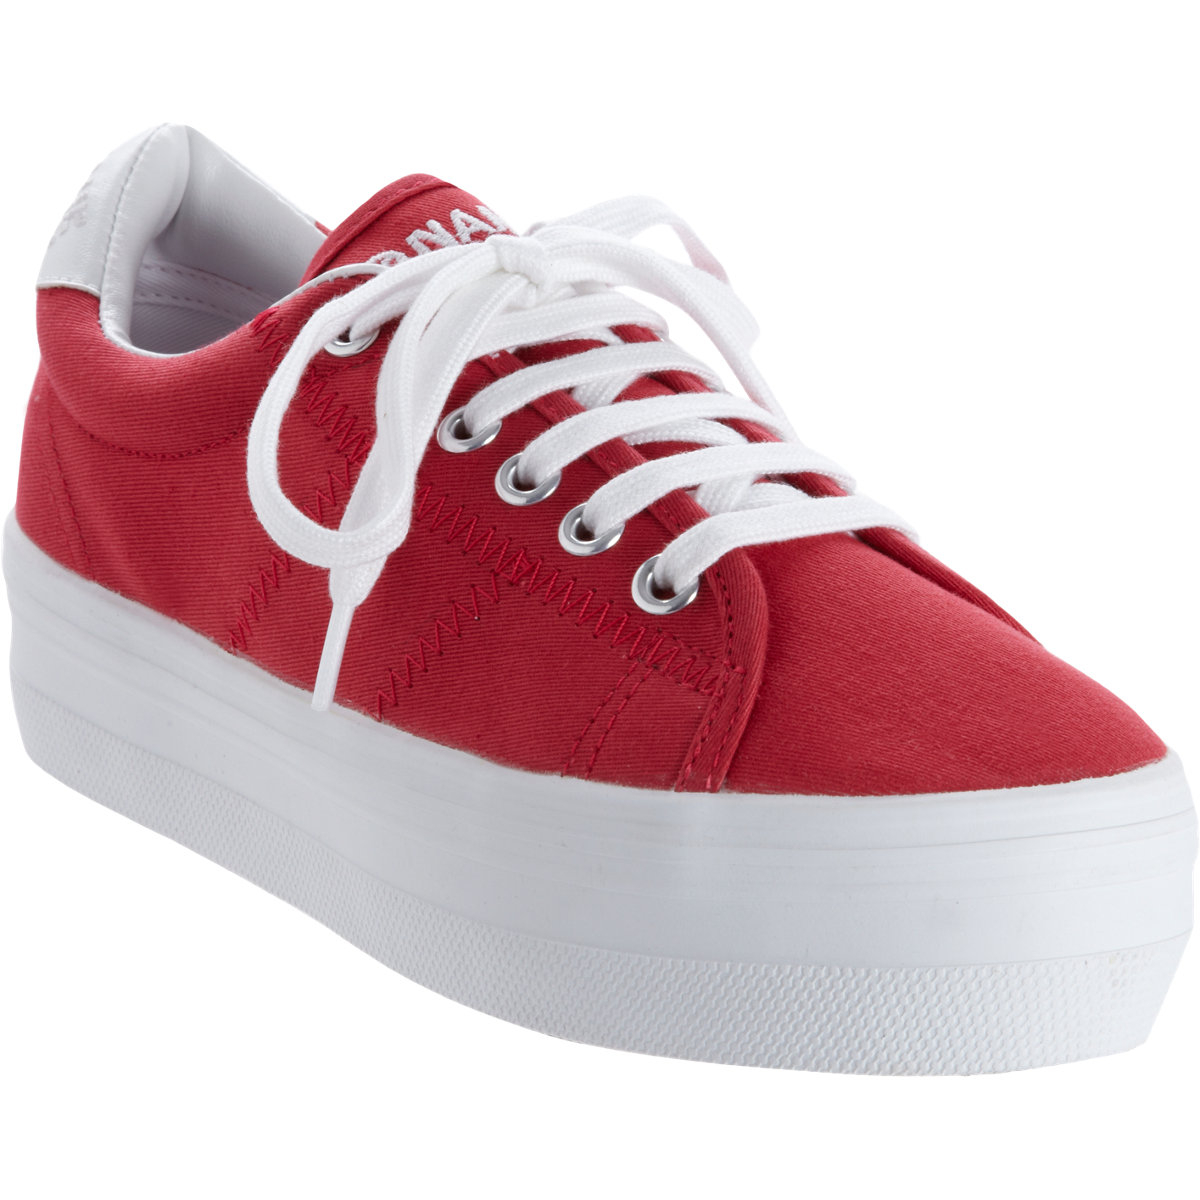 714b121ef84 Lyst - No Name Plato Platform Sneakers in Red